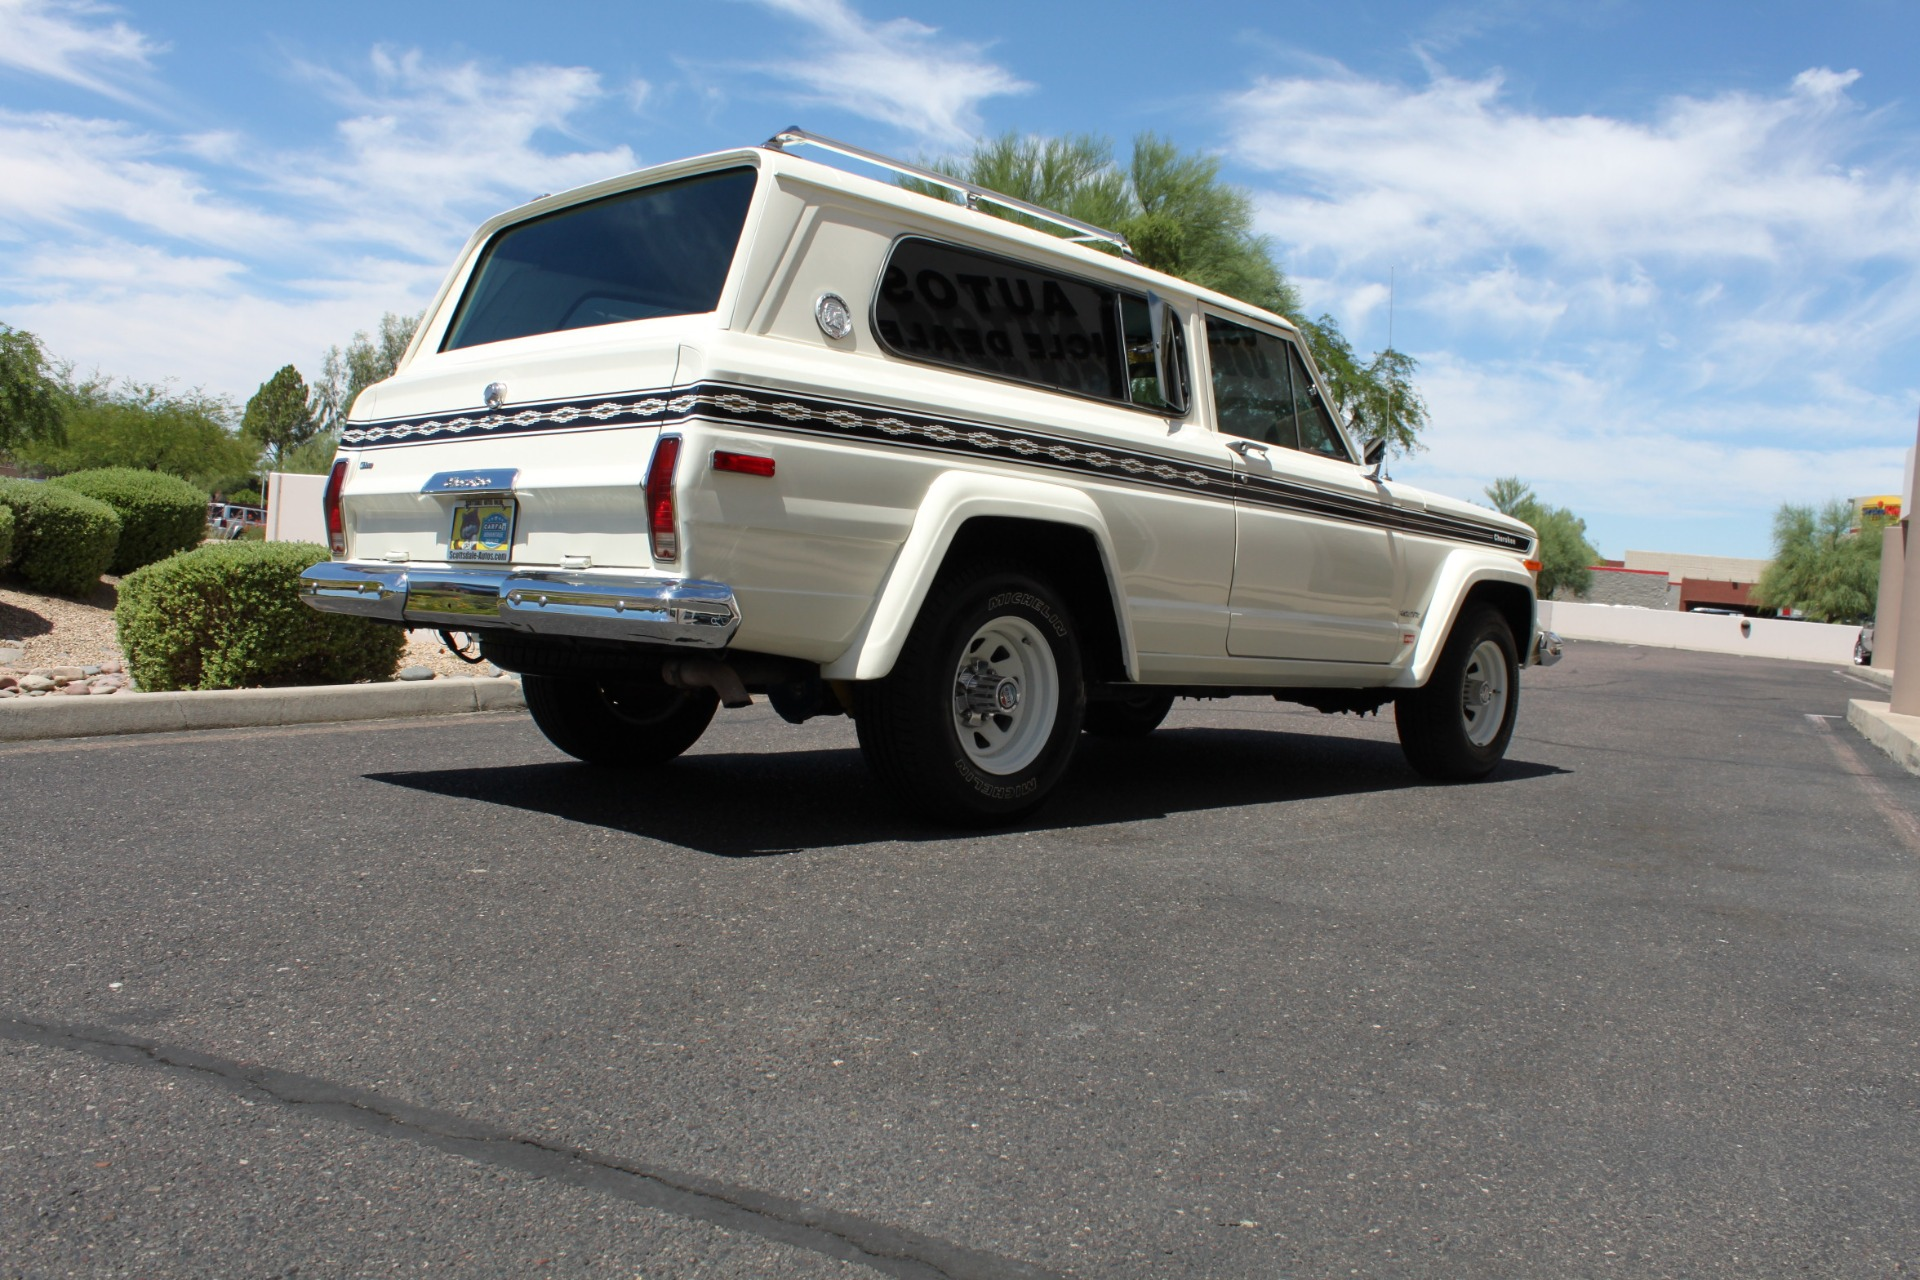 Used-1977-Jeep-Cherokee-S-Widetrack-4X4-401-V8-Land-Rover